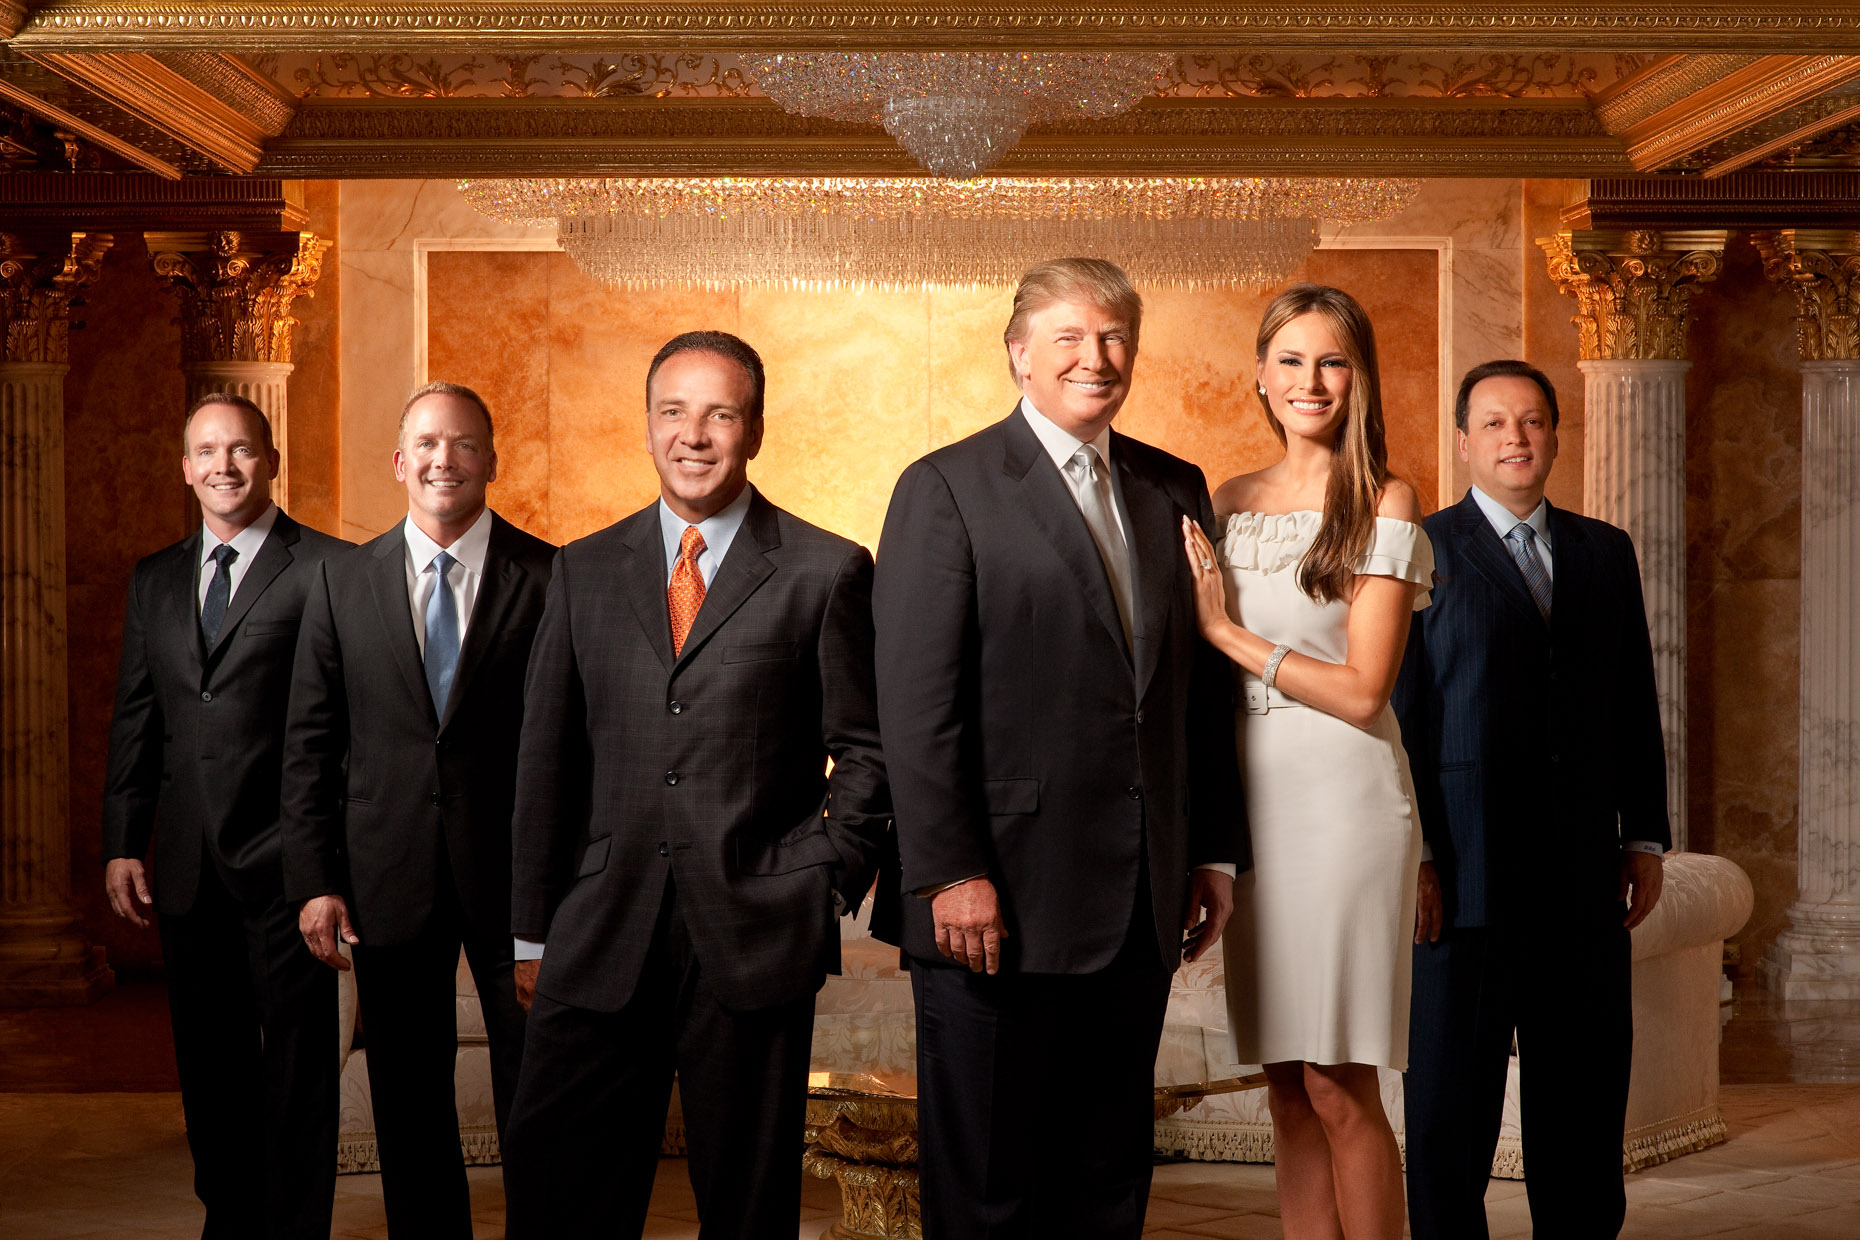 ACN Founders and Donald and Melania Trump | Advertising